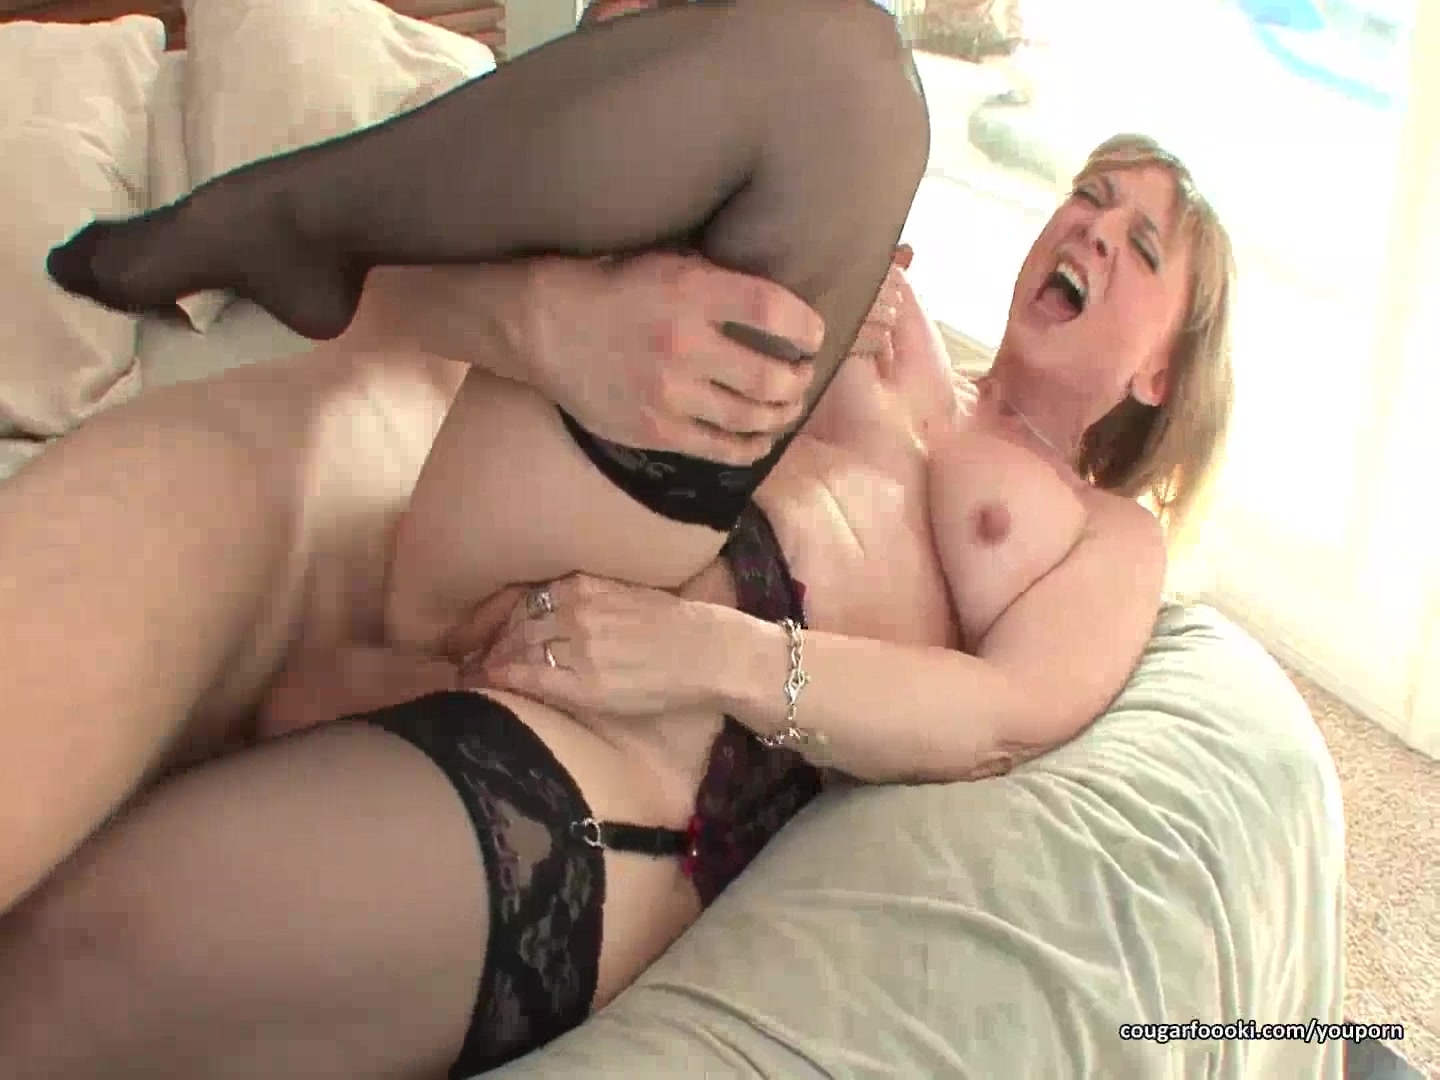 Awesome MILF rides cock like a